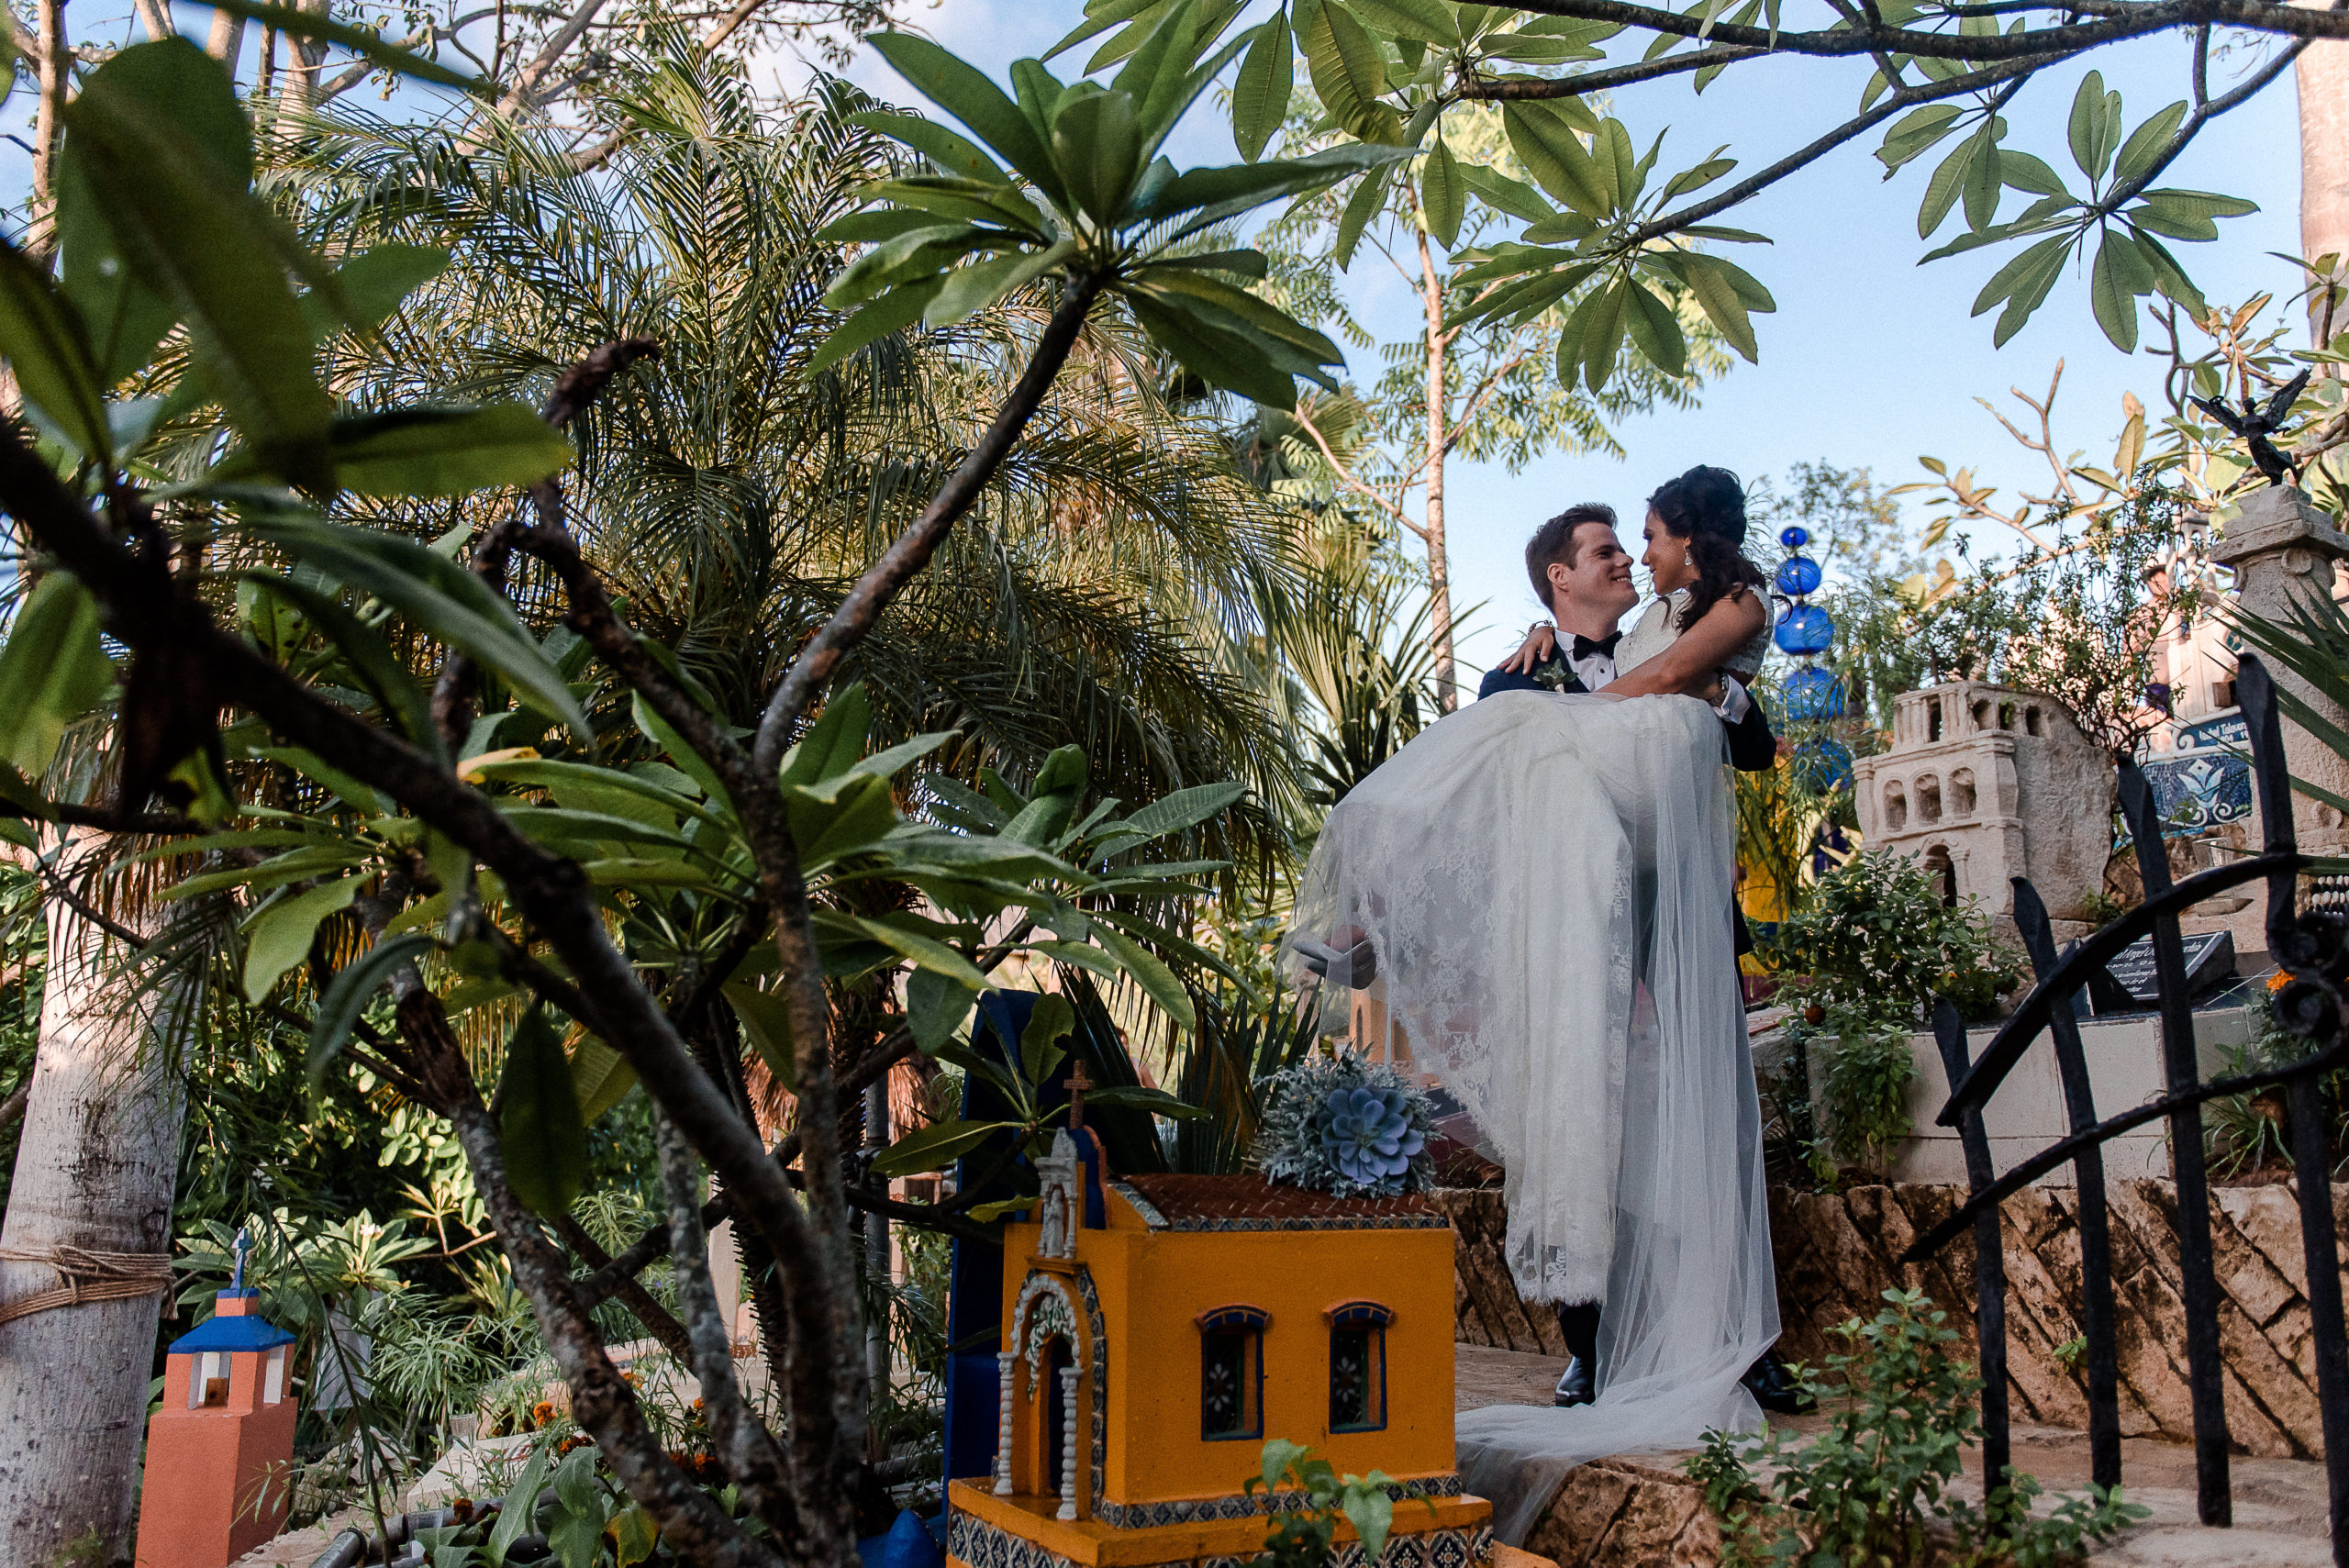 xcaret wedding mexico, Xcaret wedding Mexico – Romain & Ana